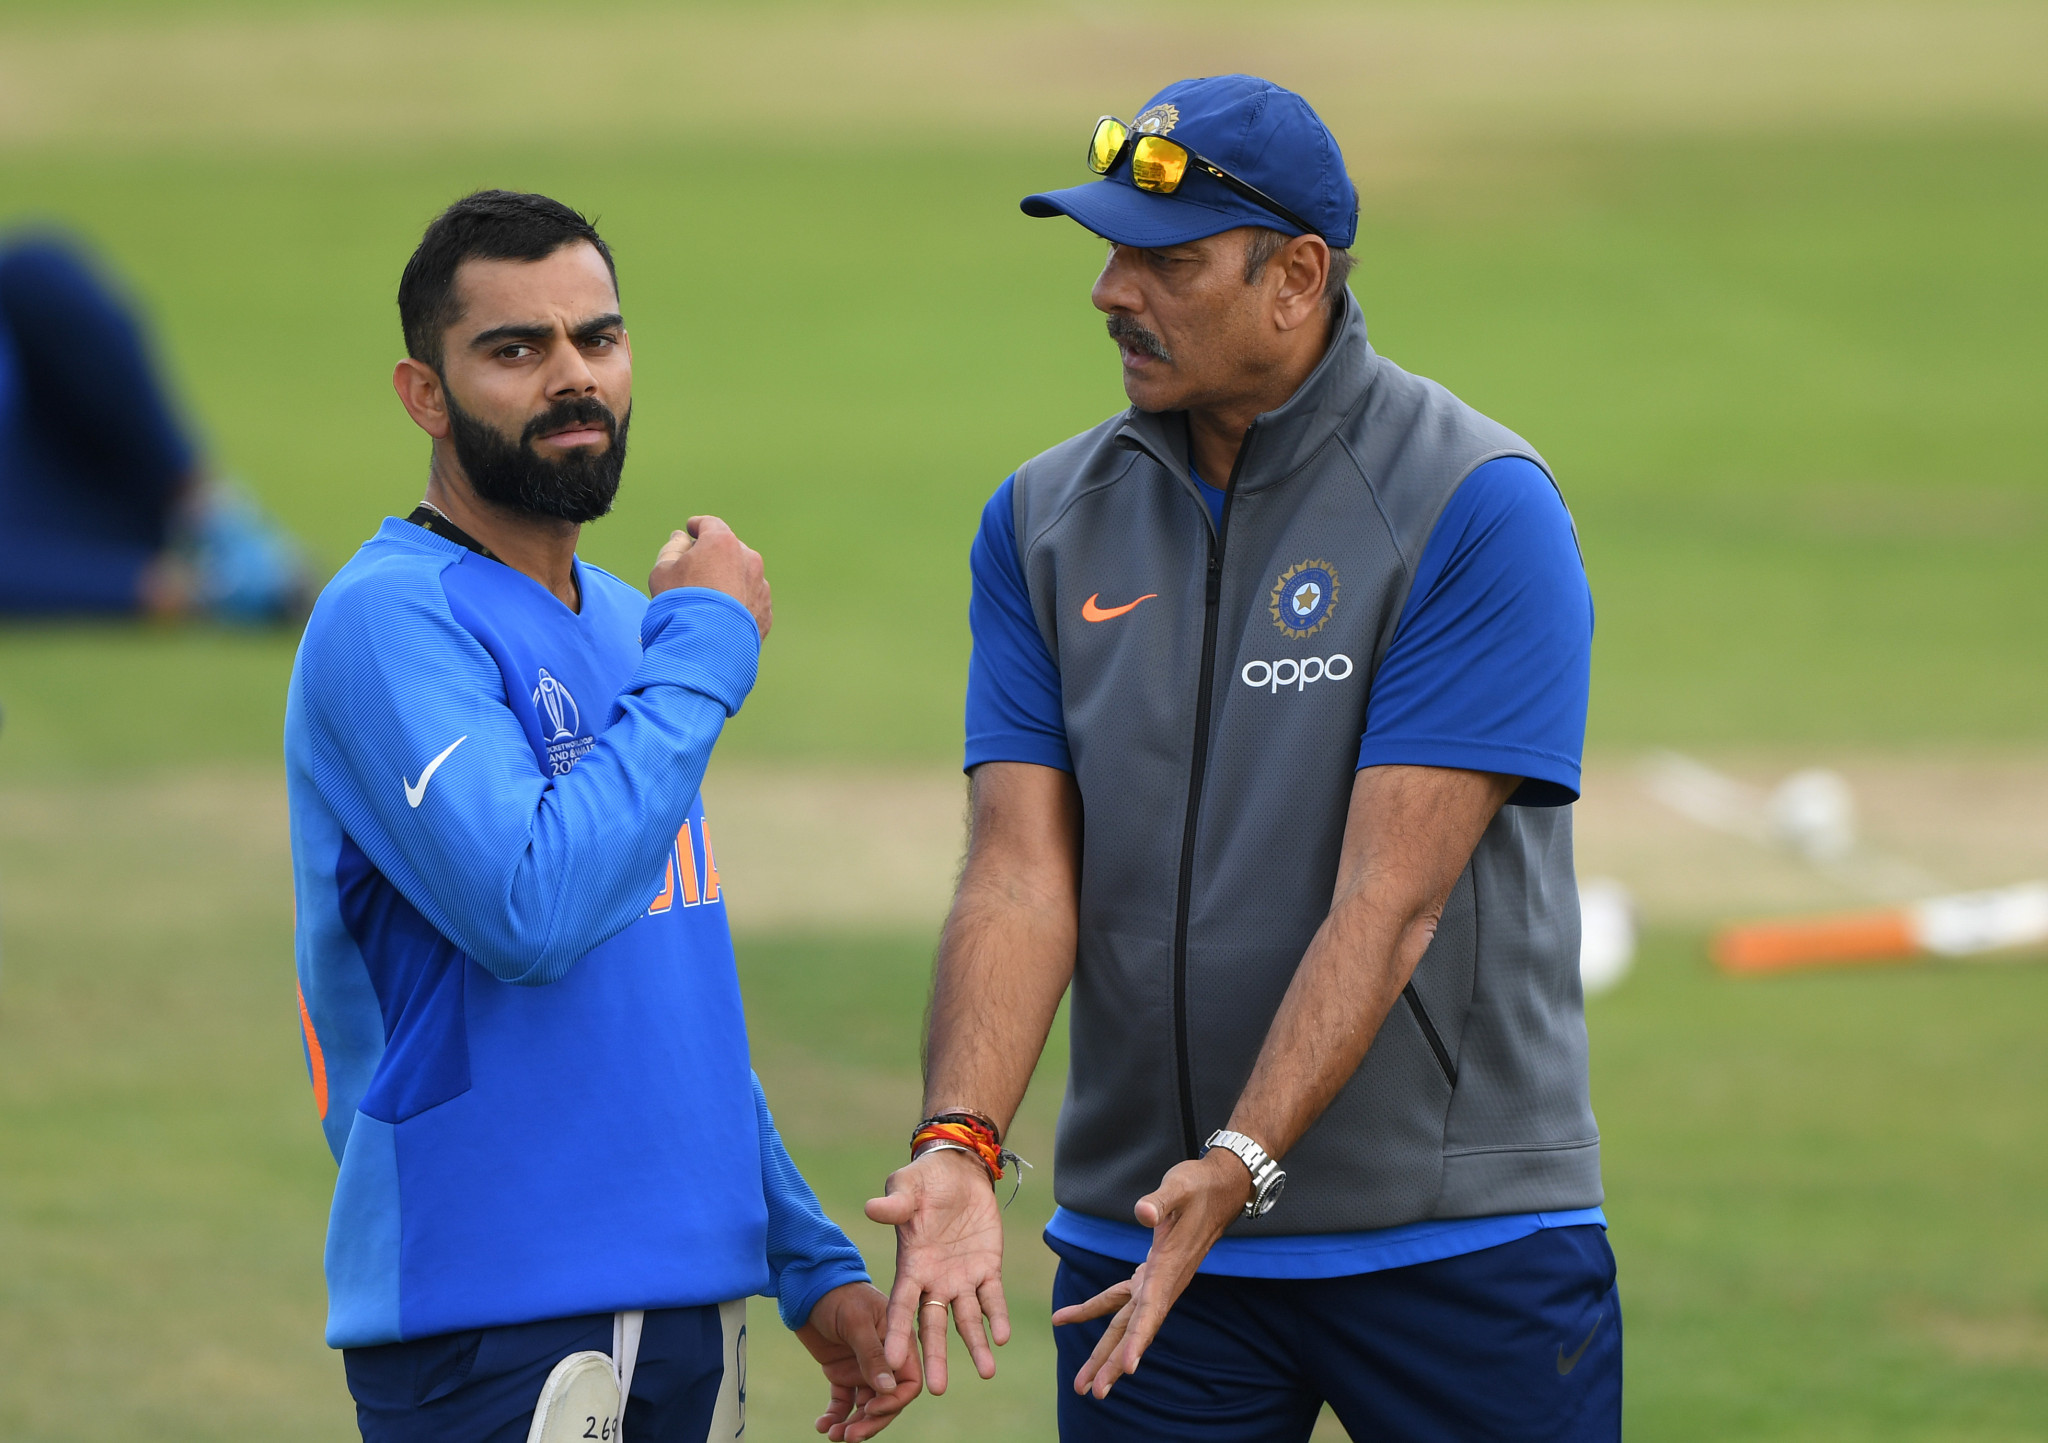 India coach Shastri says global tournaments should not be cricket's priority